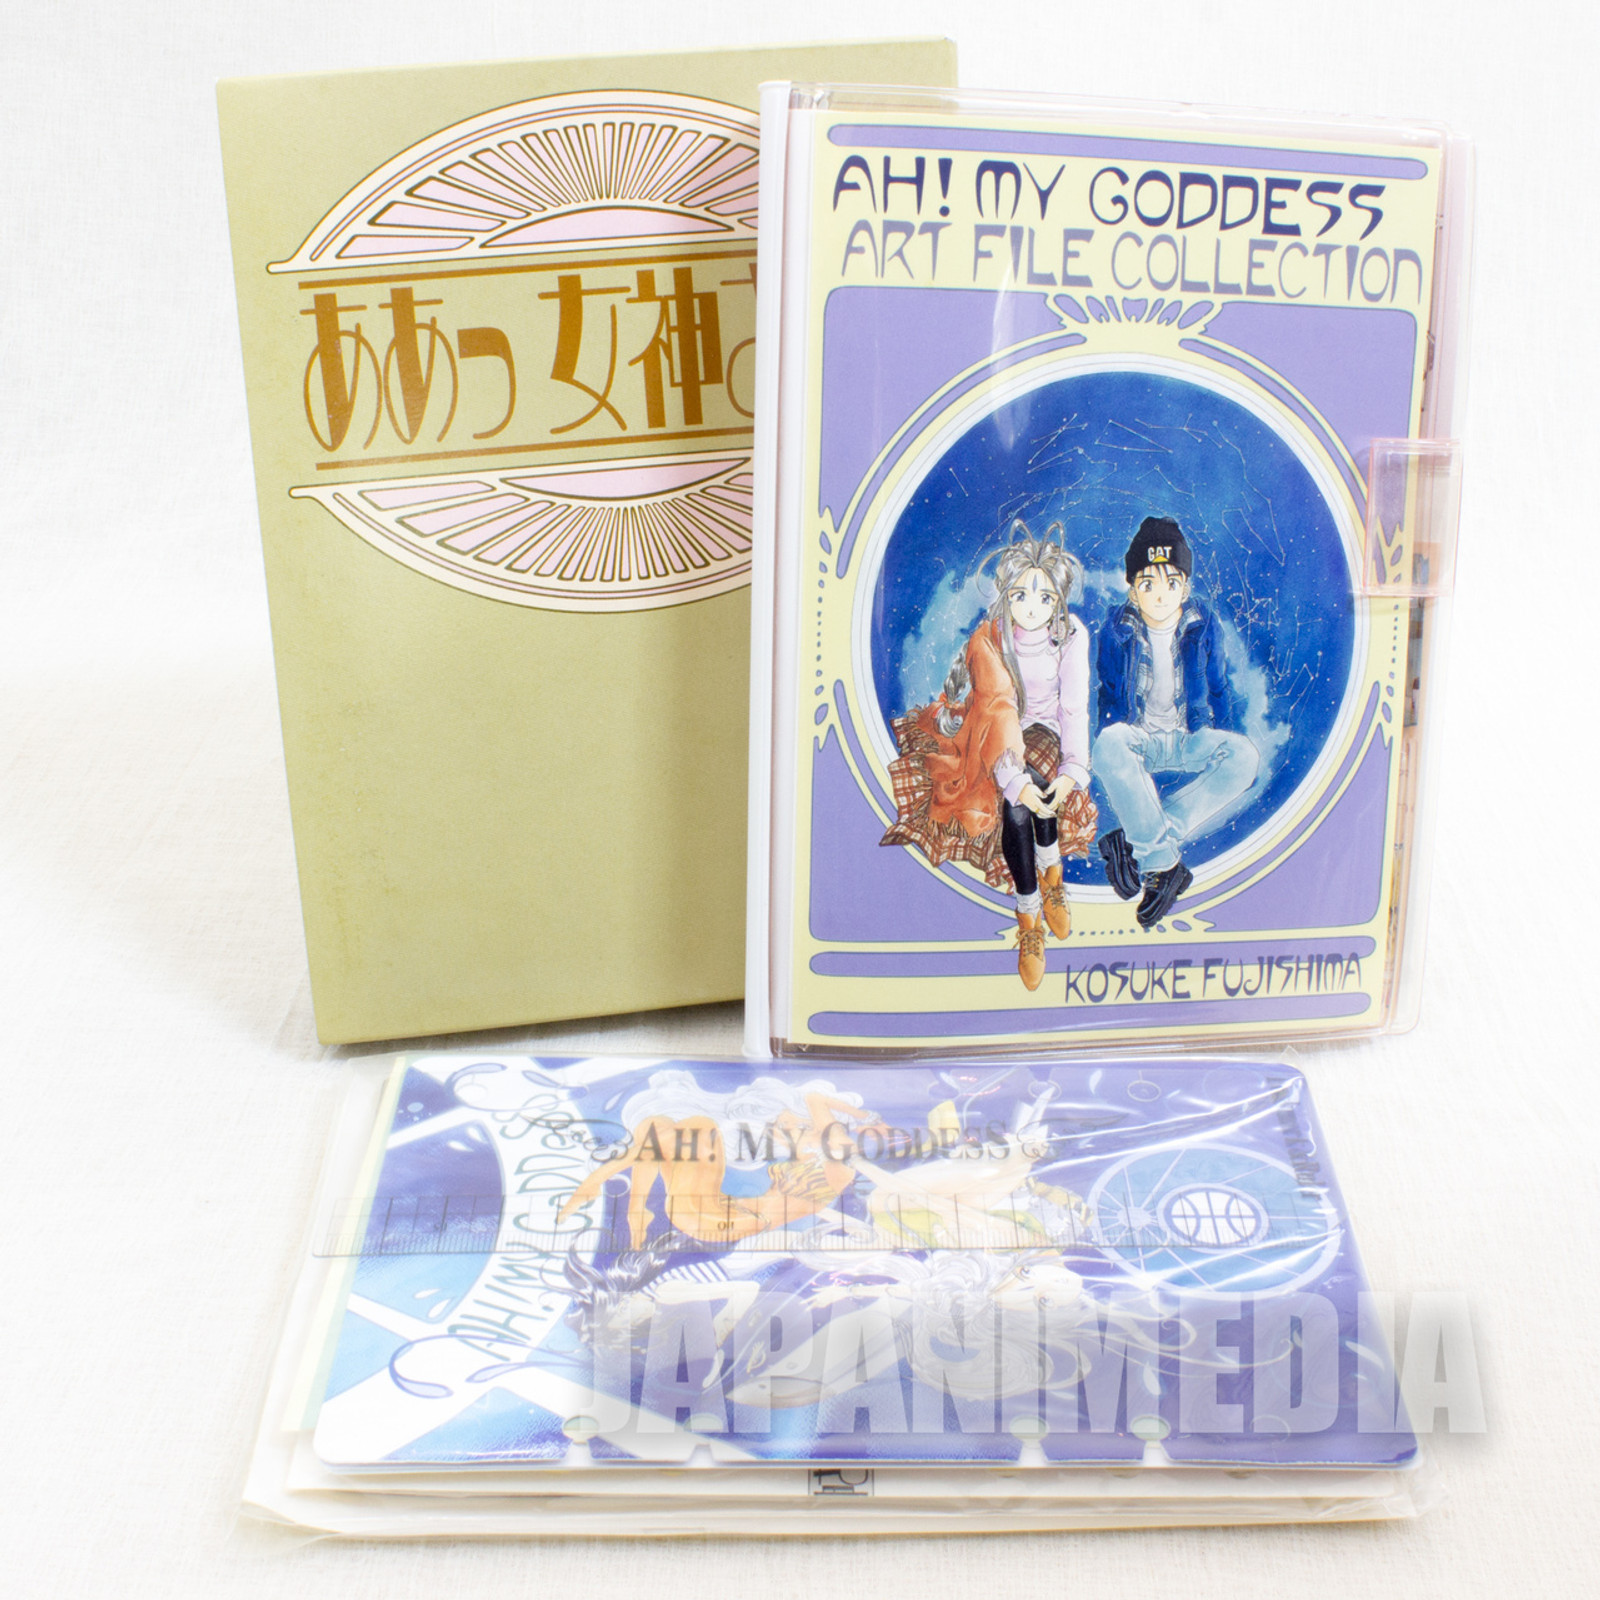 Ah! My Goddess Art File Collection Appointment Book JAPAN ANIME MANGA